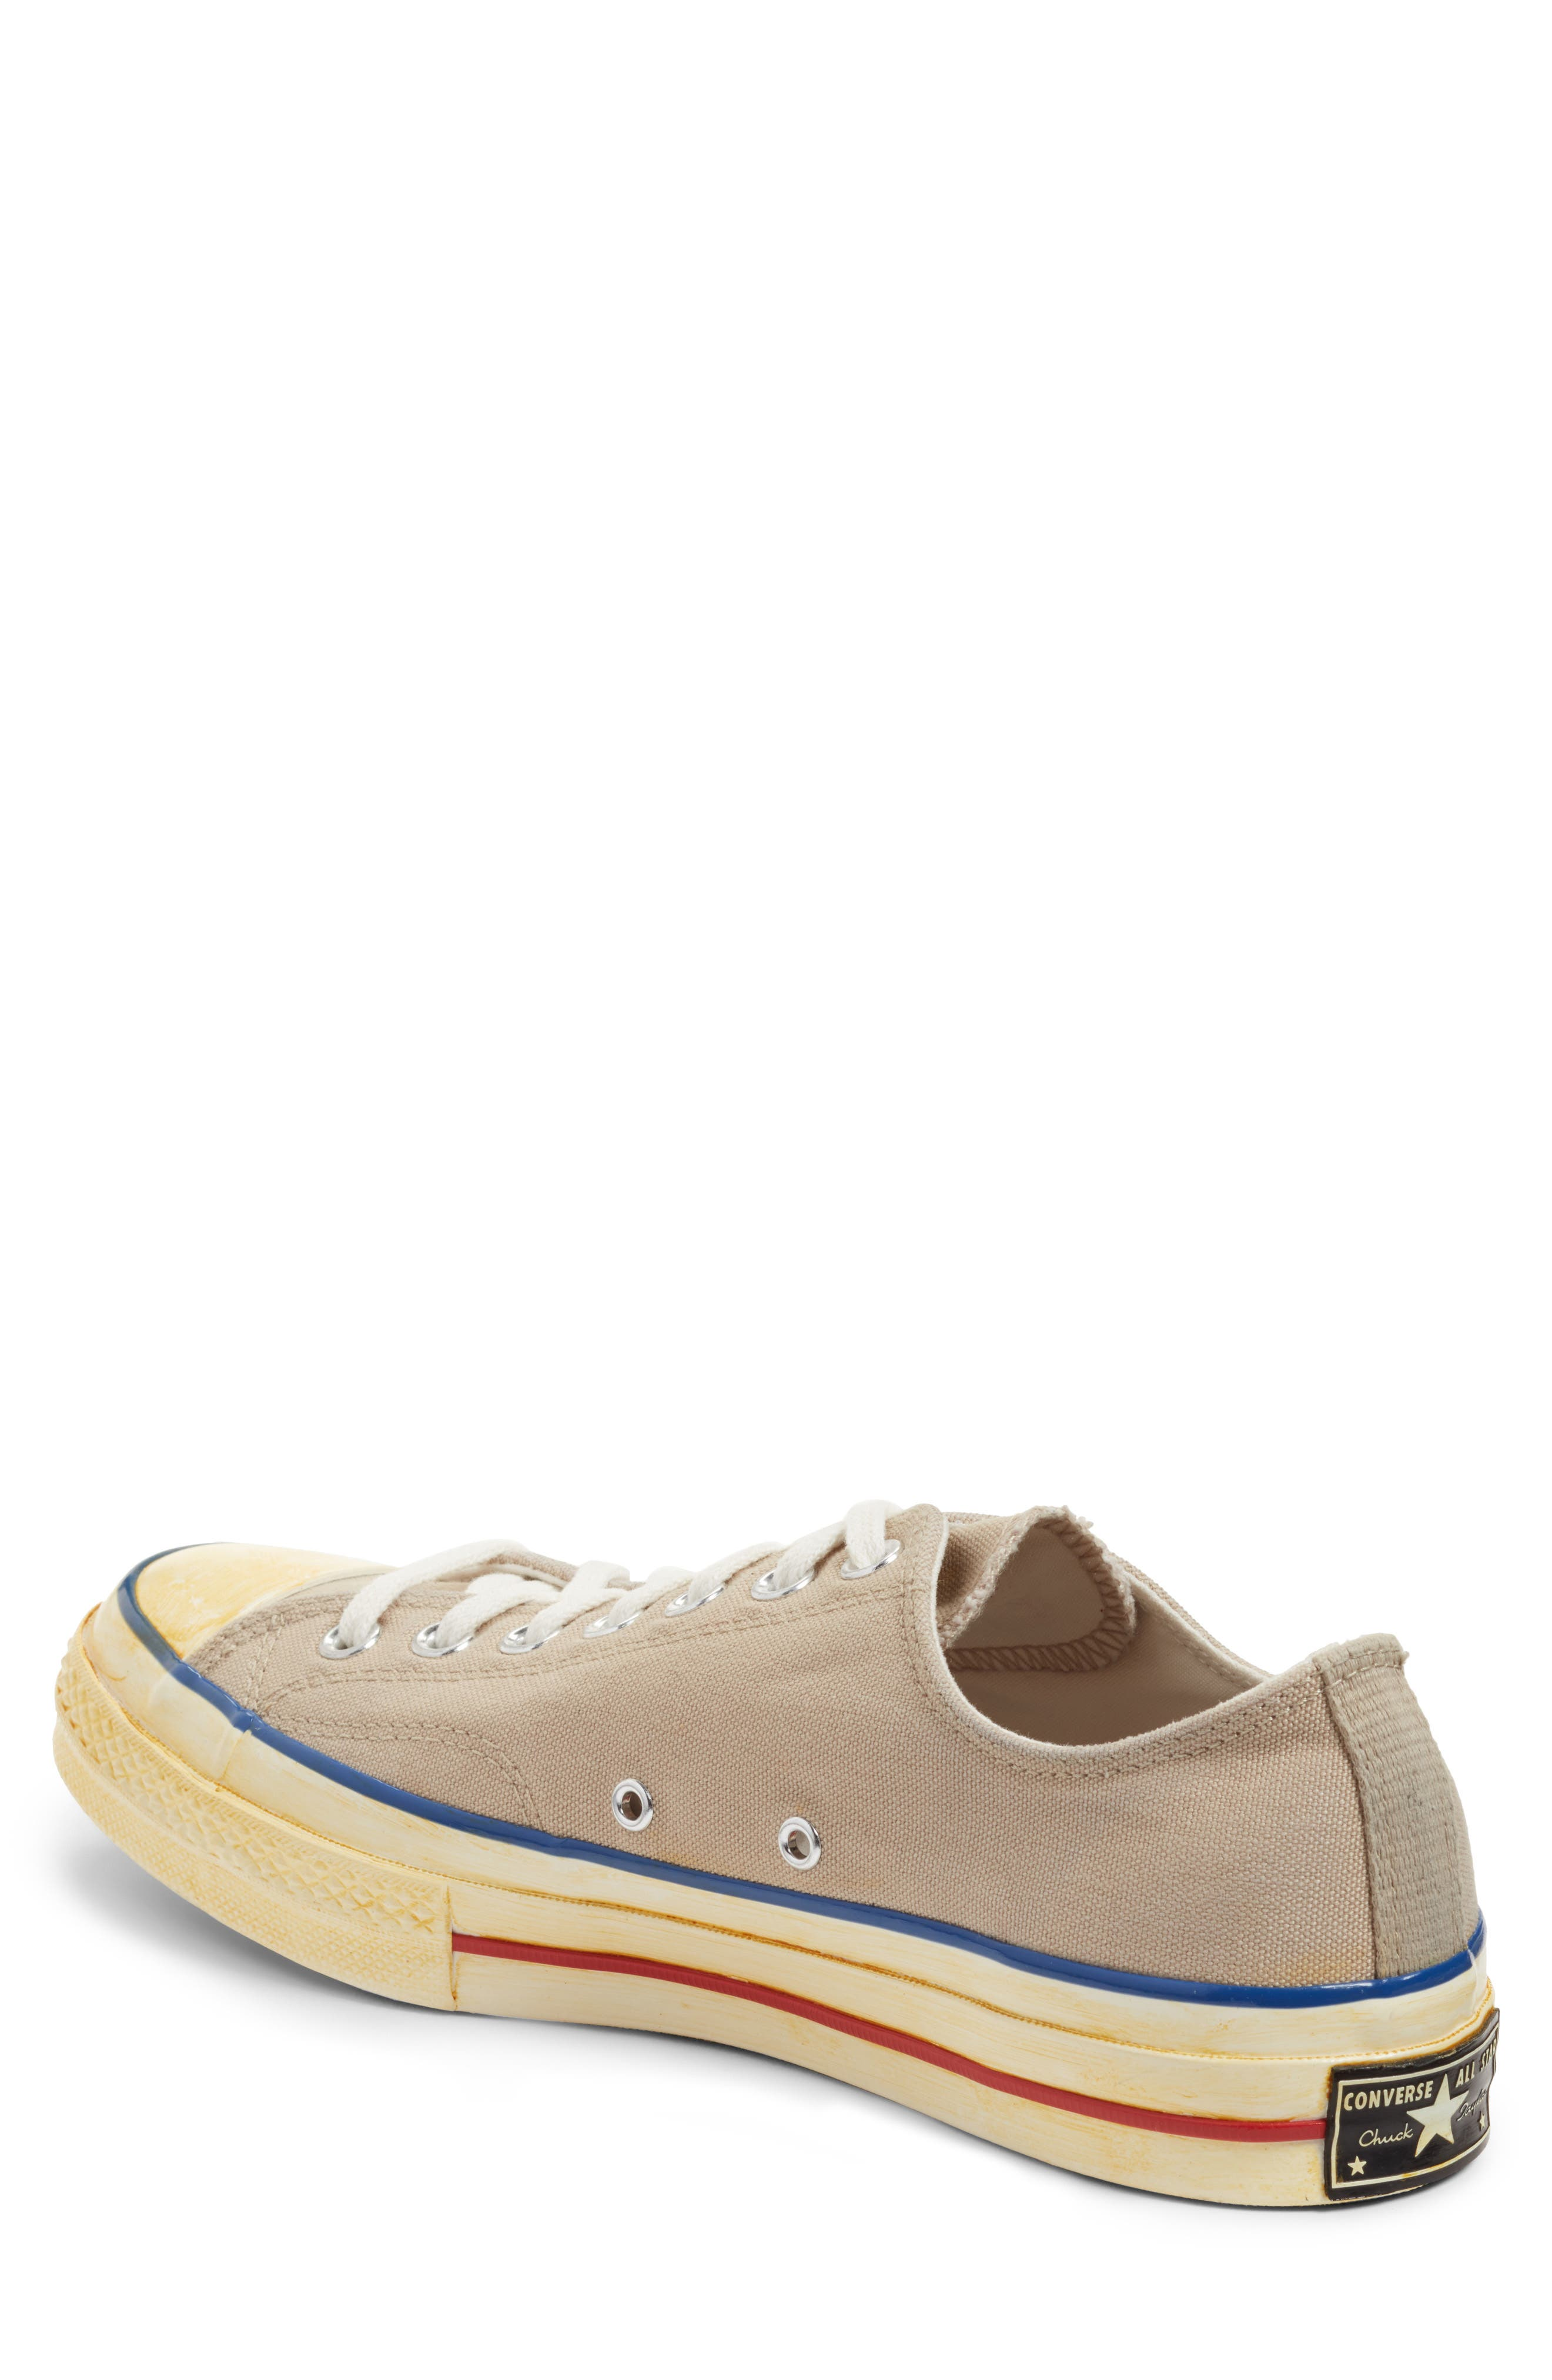 Chuck Taylor<sup>®</sup> All Star<sup>®</sup> 70 Low Top Sneaker,                             Alternate thumbnail 2, color,                             270